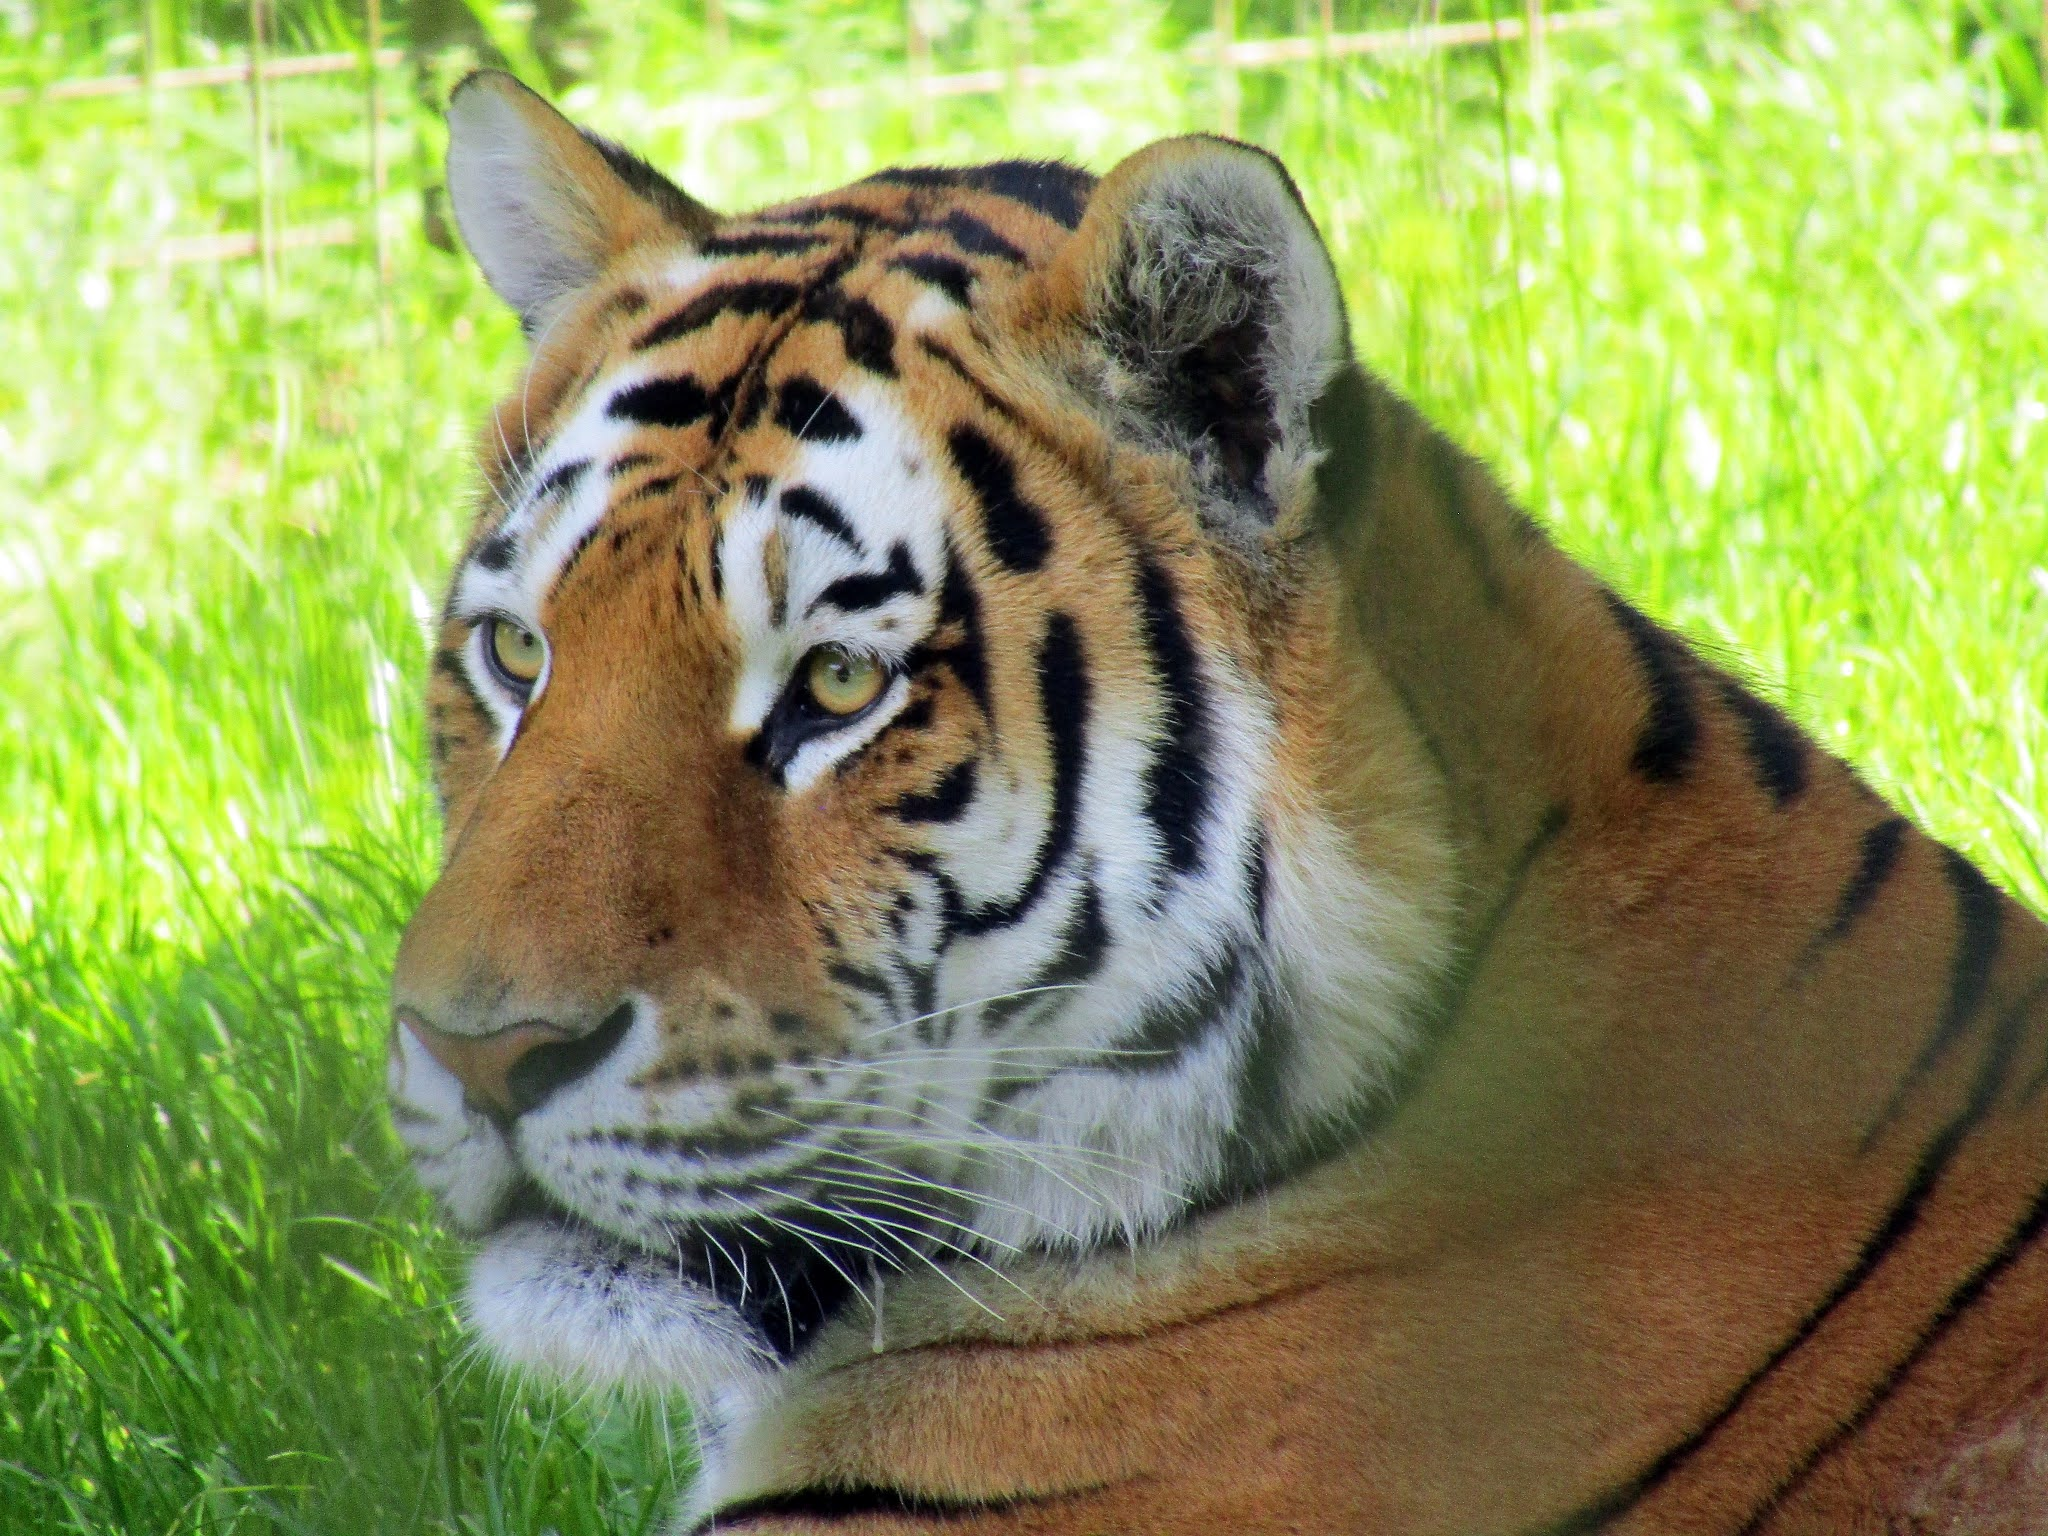 A photo of an amur tiger at Whipsnade Zoo.